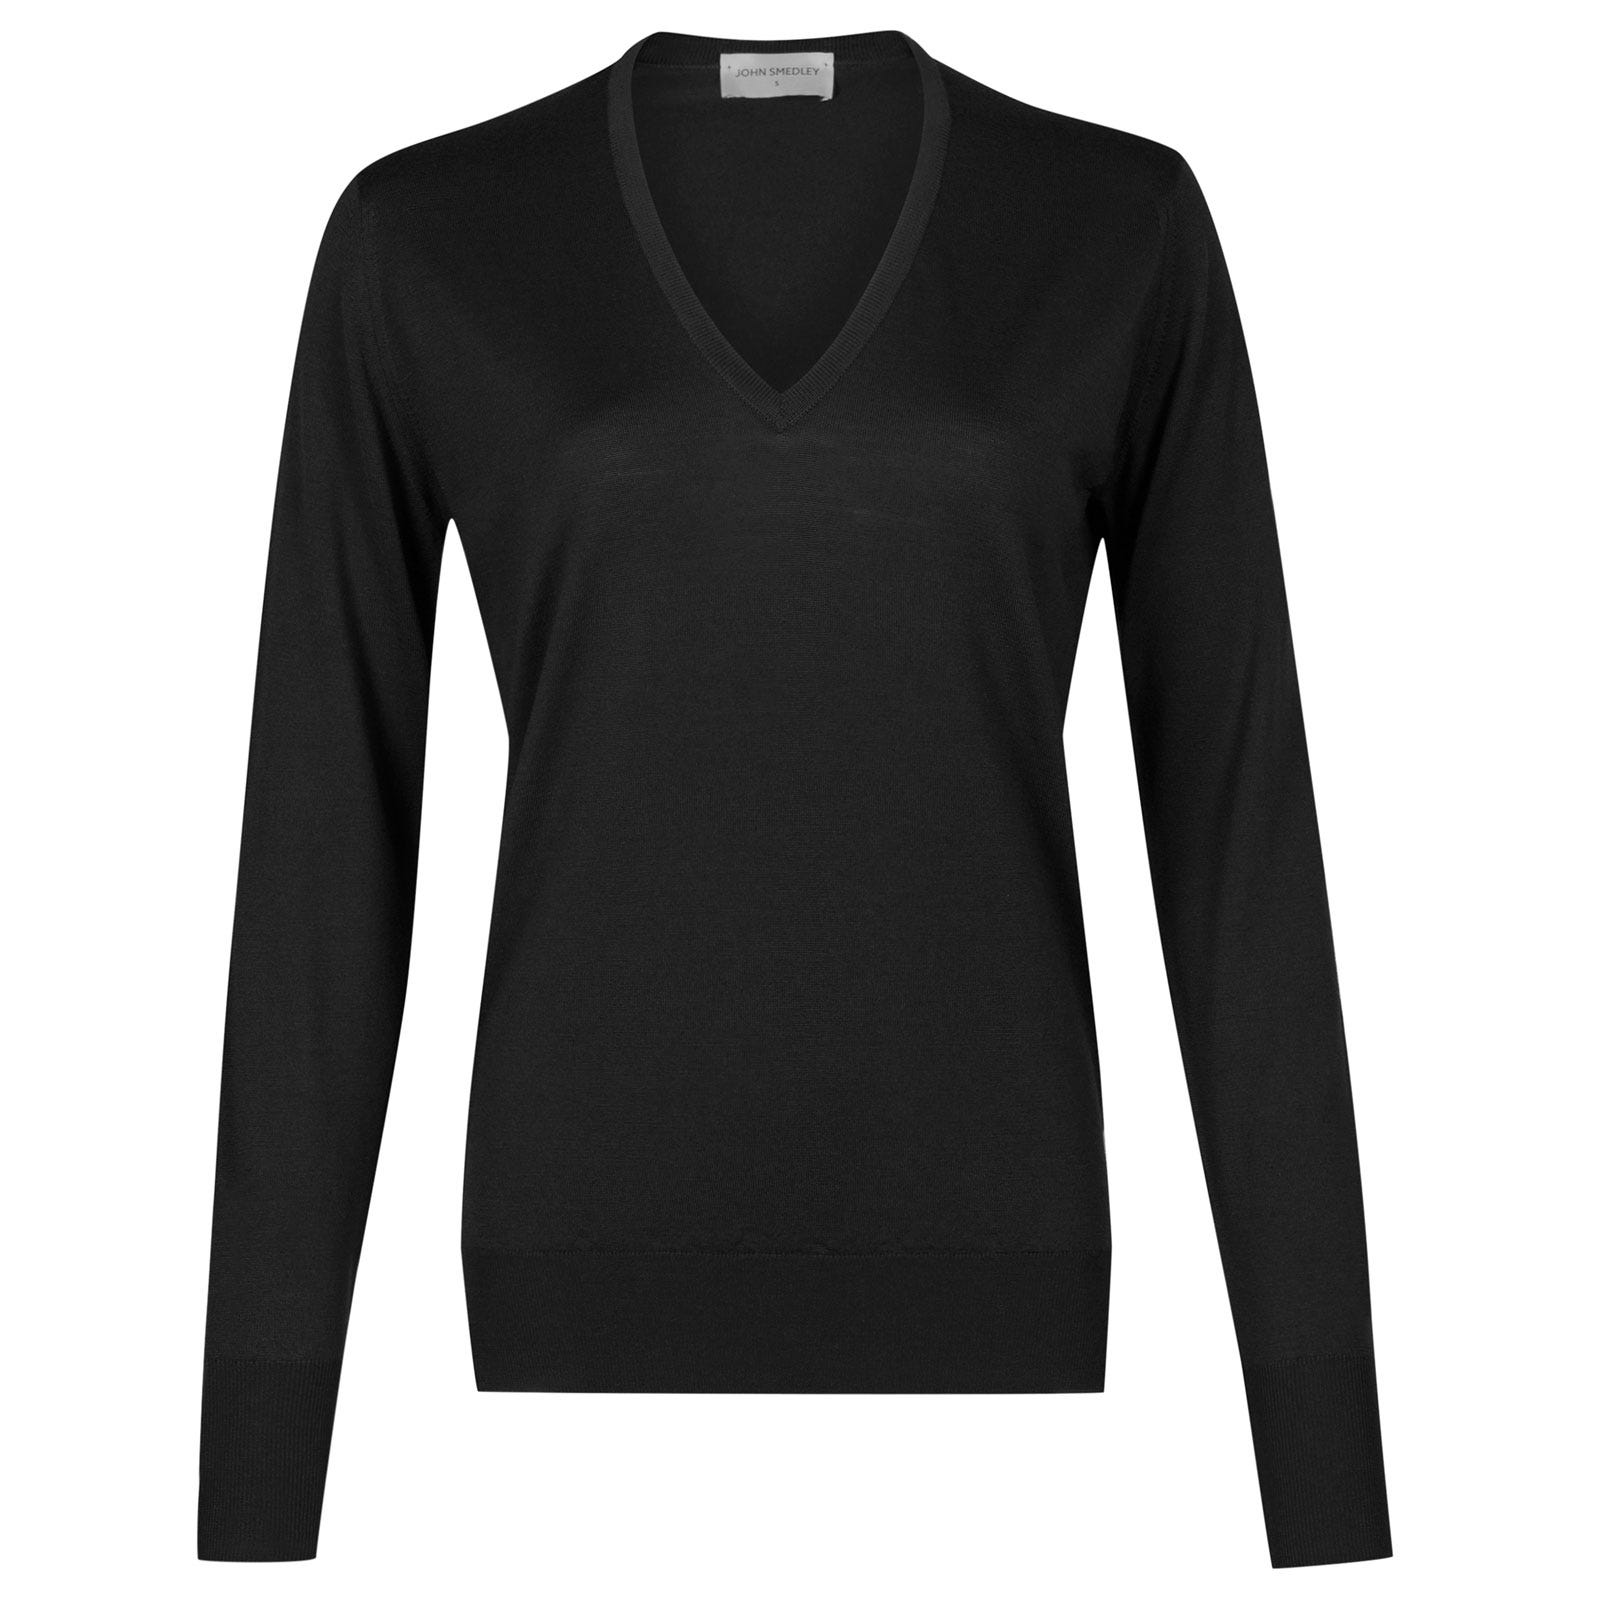 John Smedley Pepin Merino Wool Sweater in Black-L